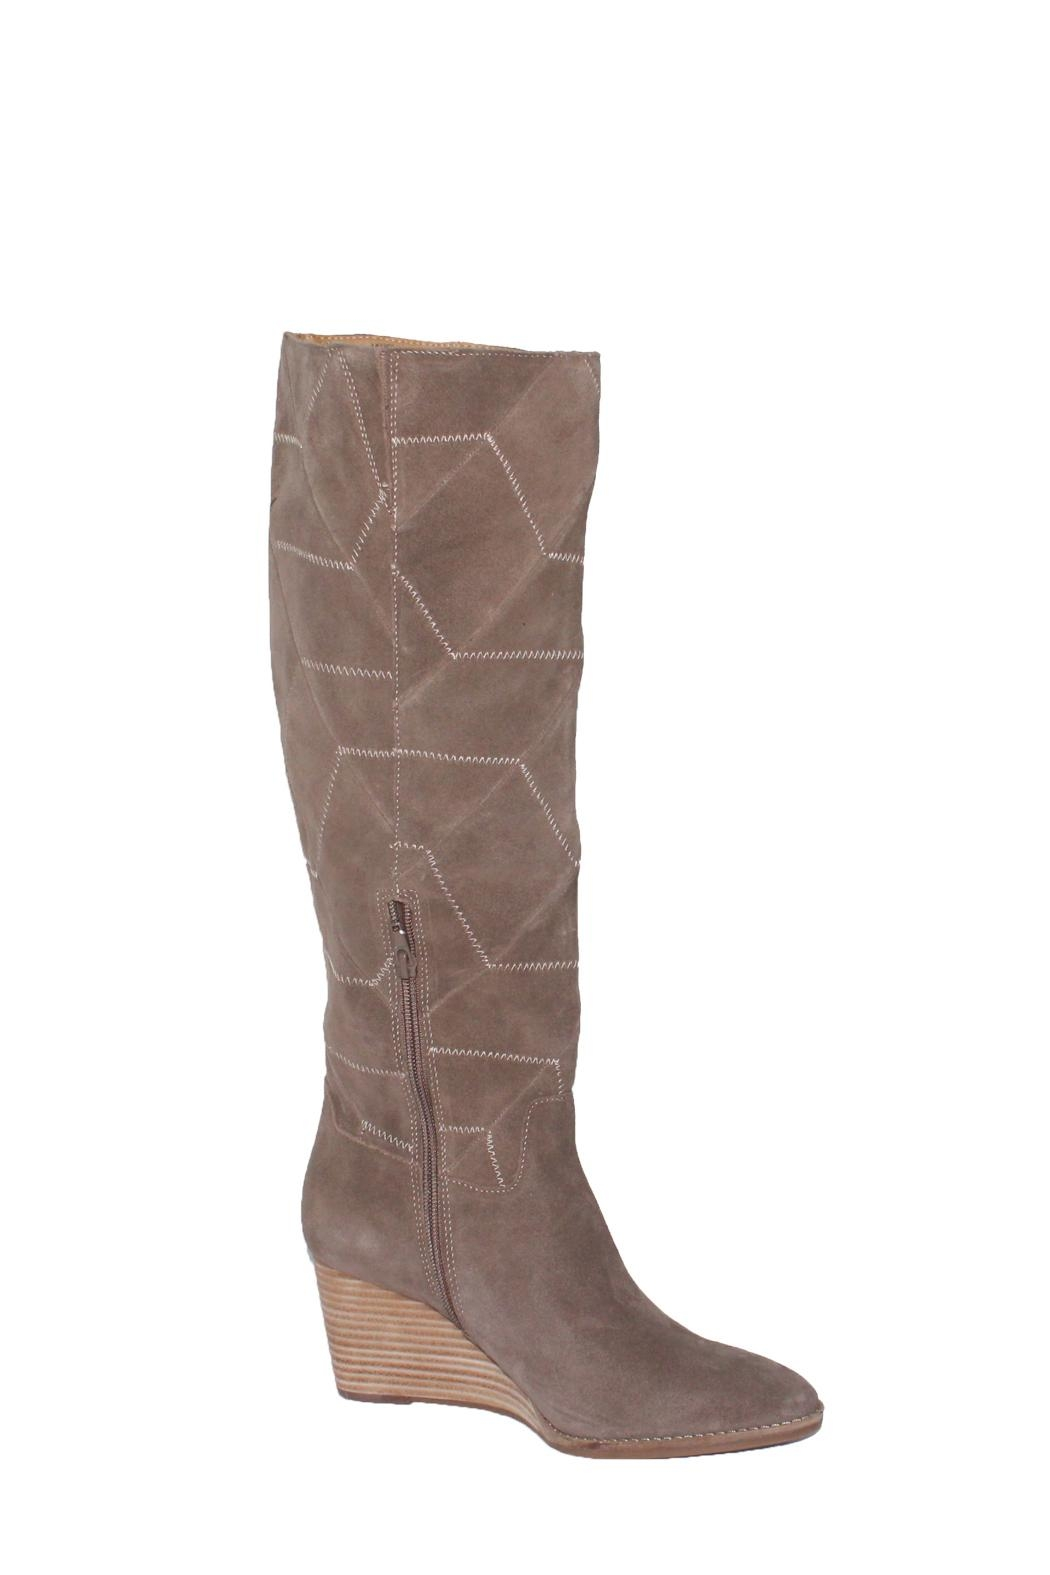 Lucky Brand Preeka Tall Water Proof Suede Chevron Stitch  Boots - Front Full Image